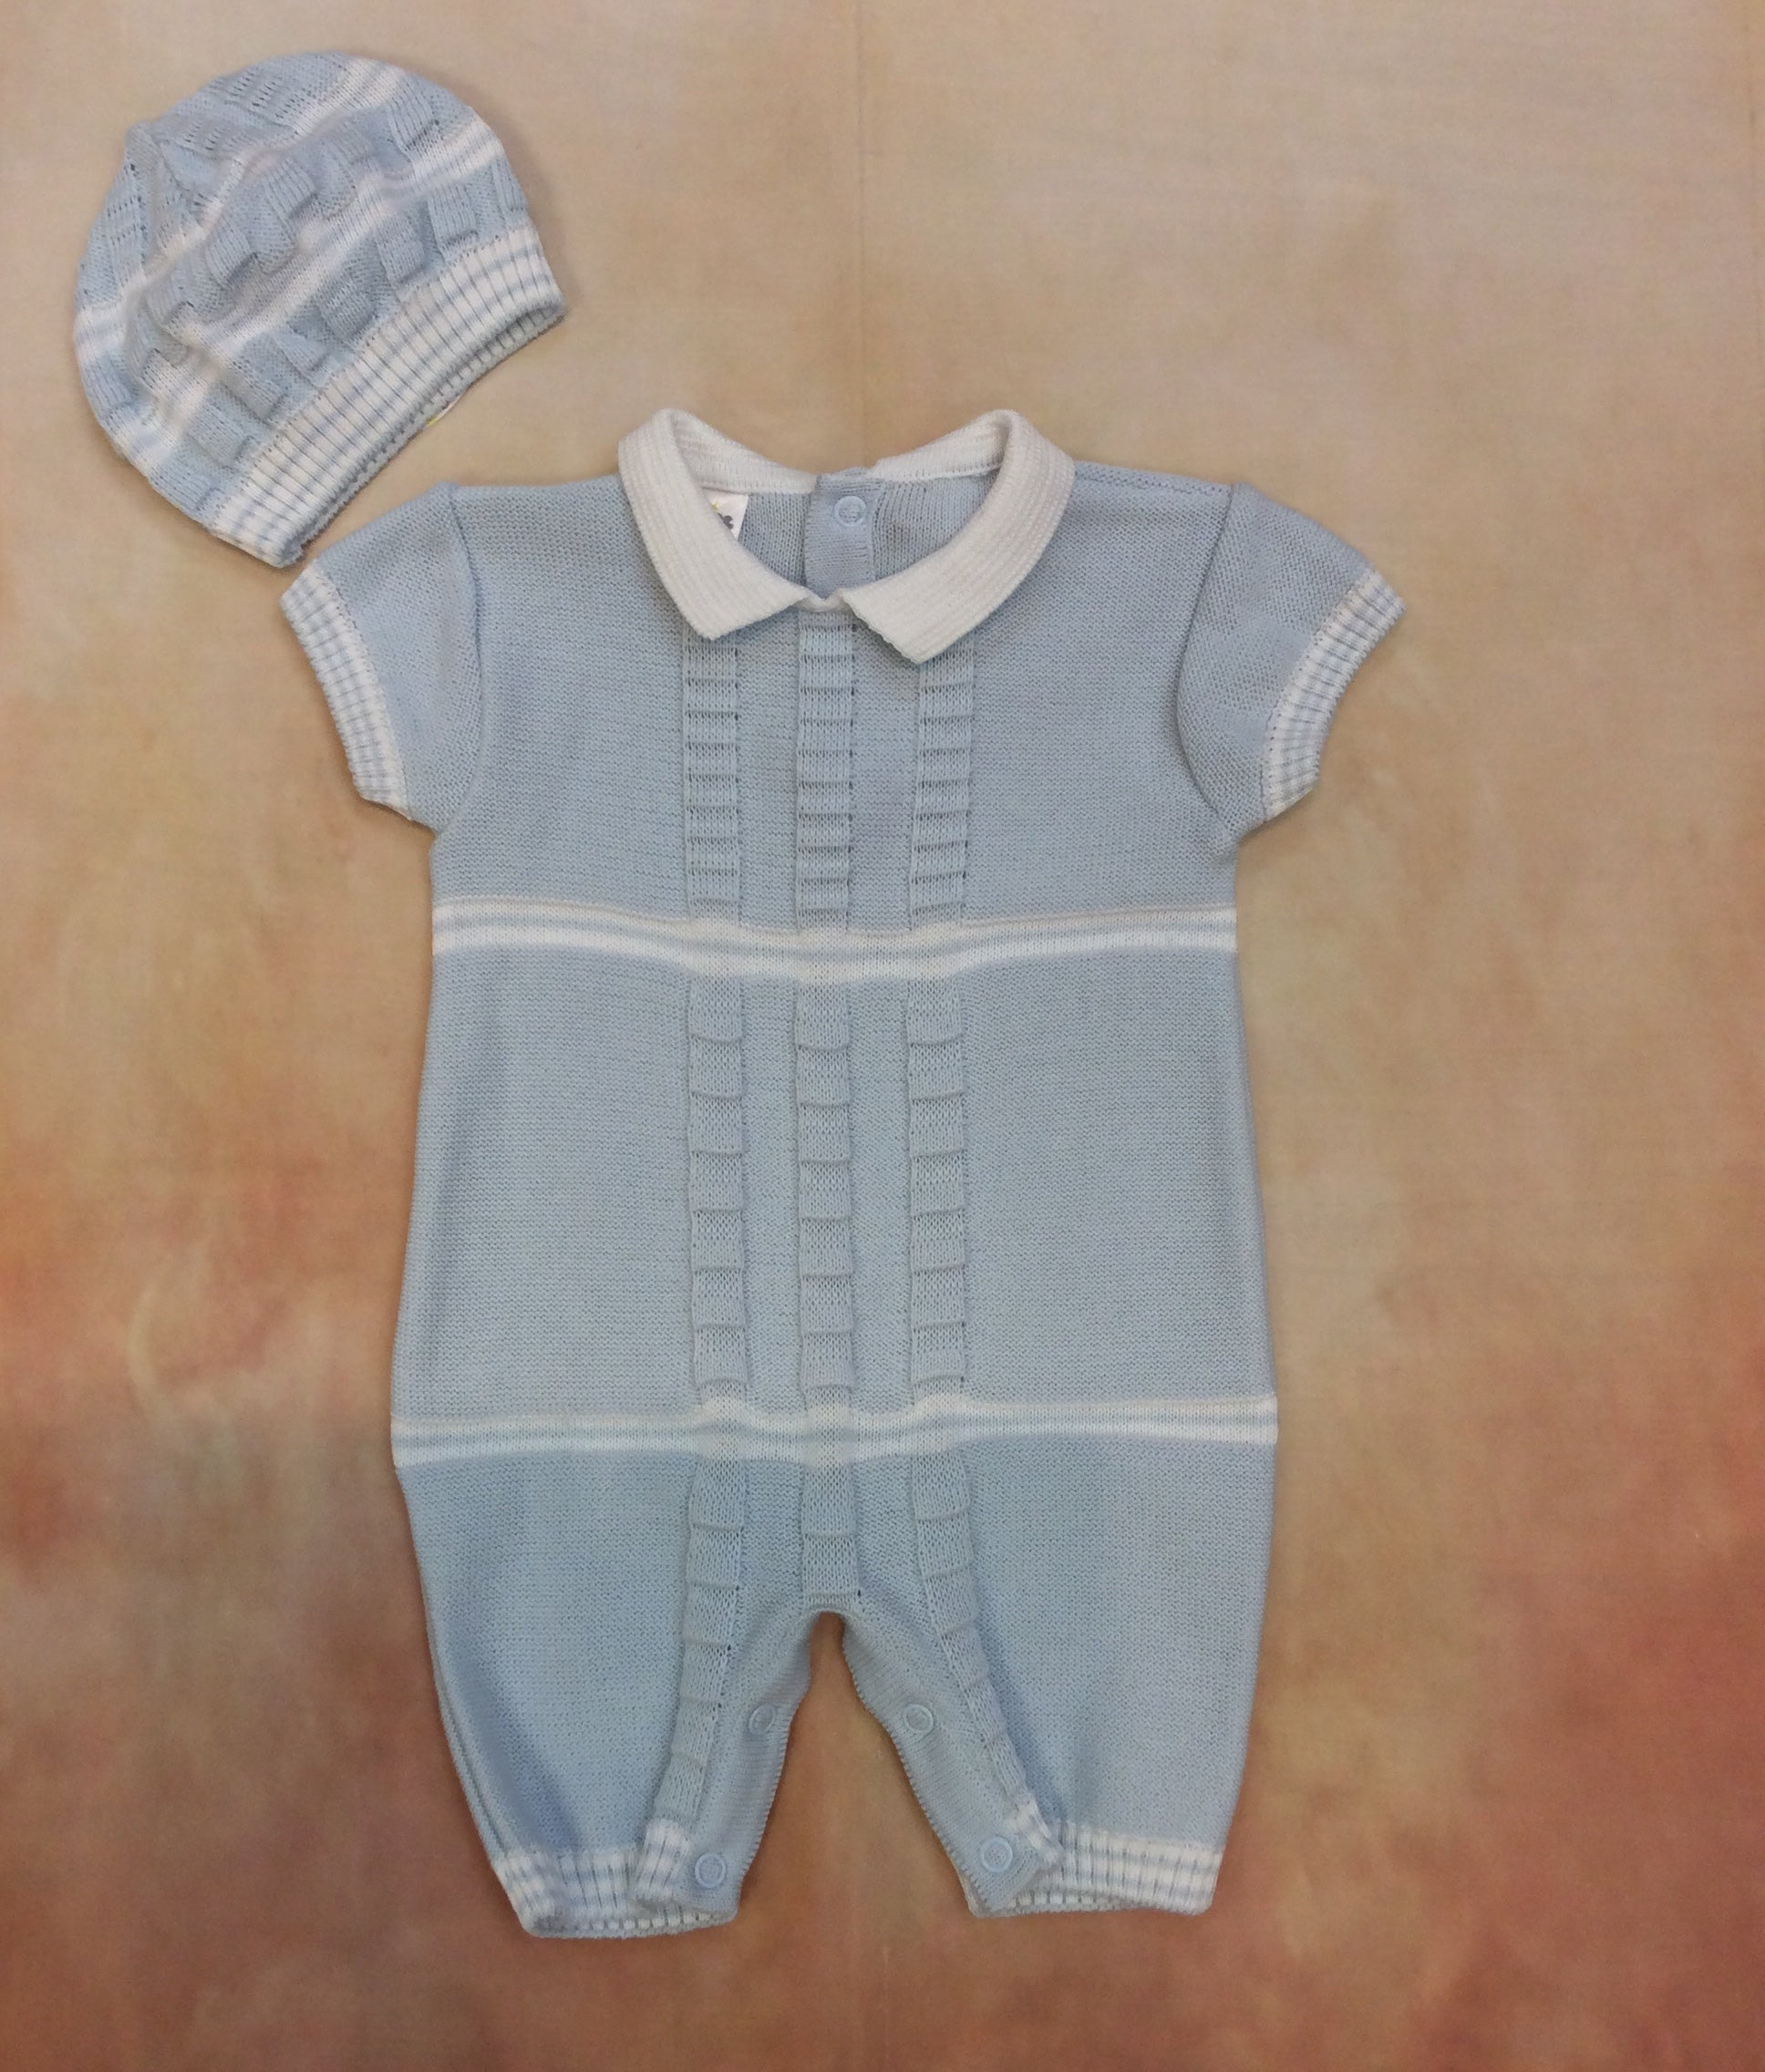 DG67SS20UN000360 Boys sky blue & white knit jumper & Hat - Nenes Lullaby Boutique Inc